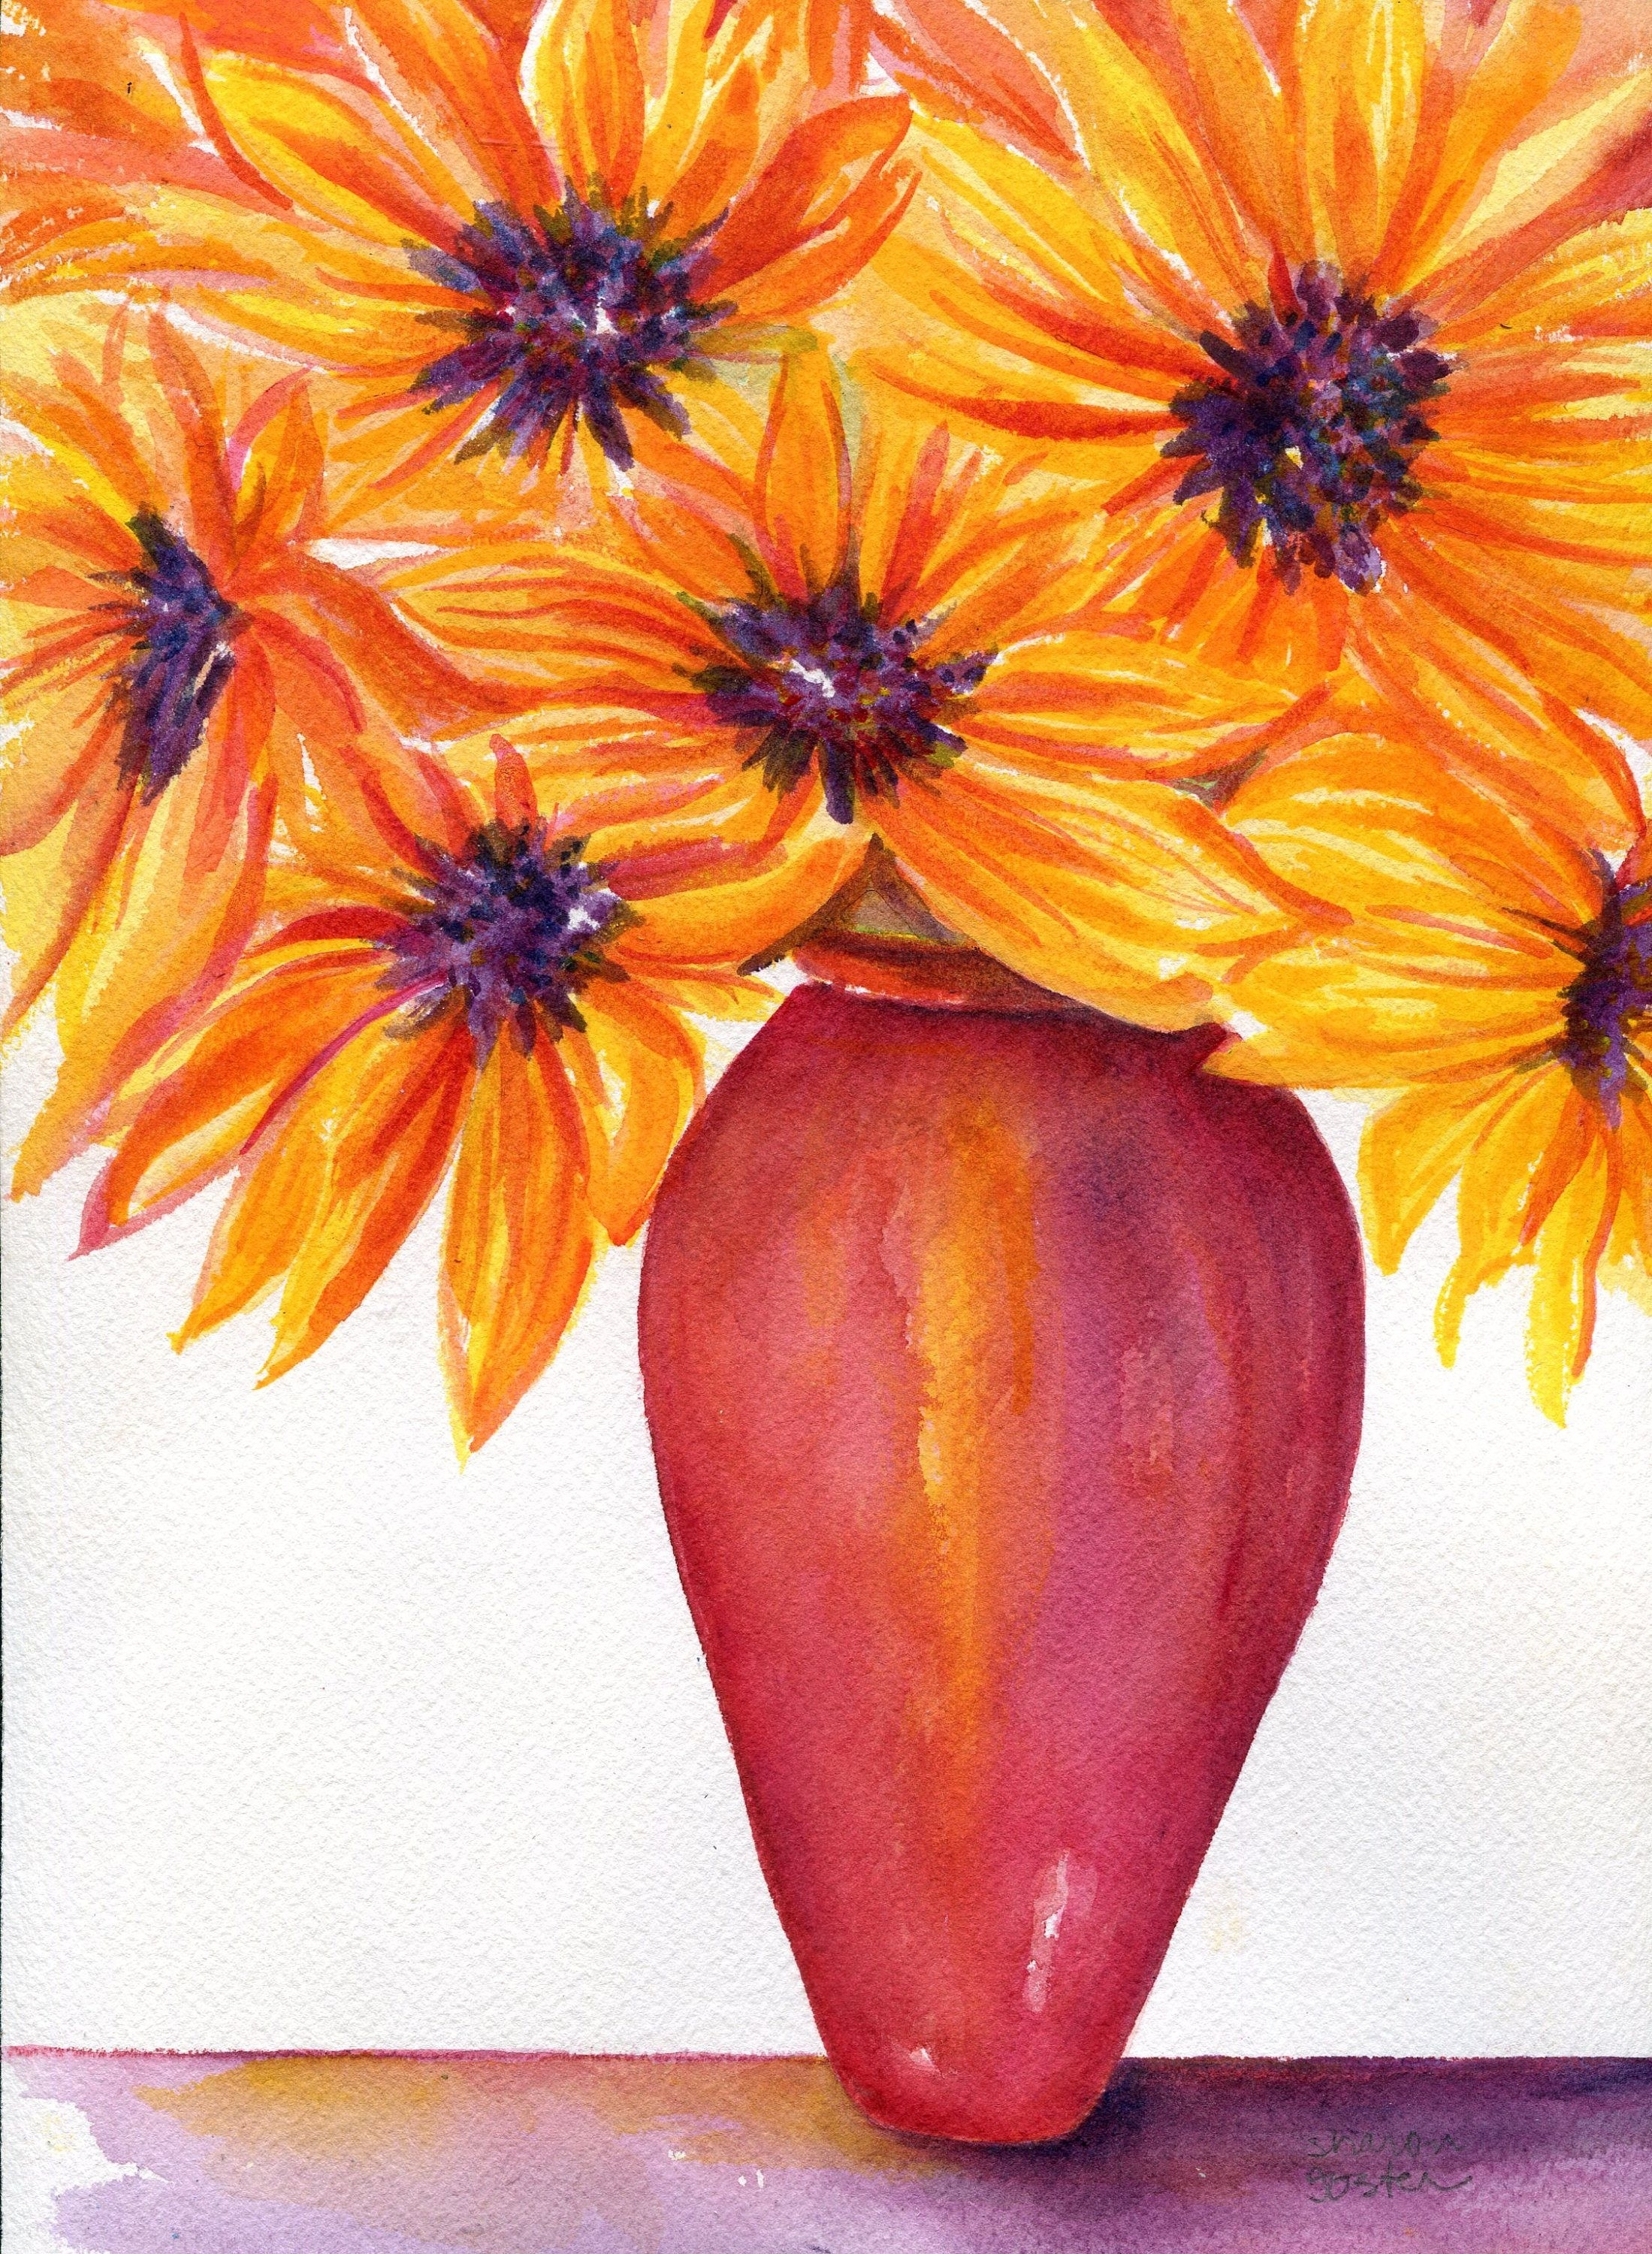 Sunflowers Watercolors Painting Original, Sunflower Wall Art Throughout 2017 Sunflower Wall Art (View 16 of 20)